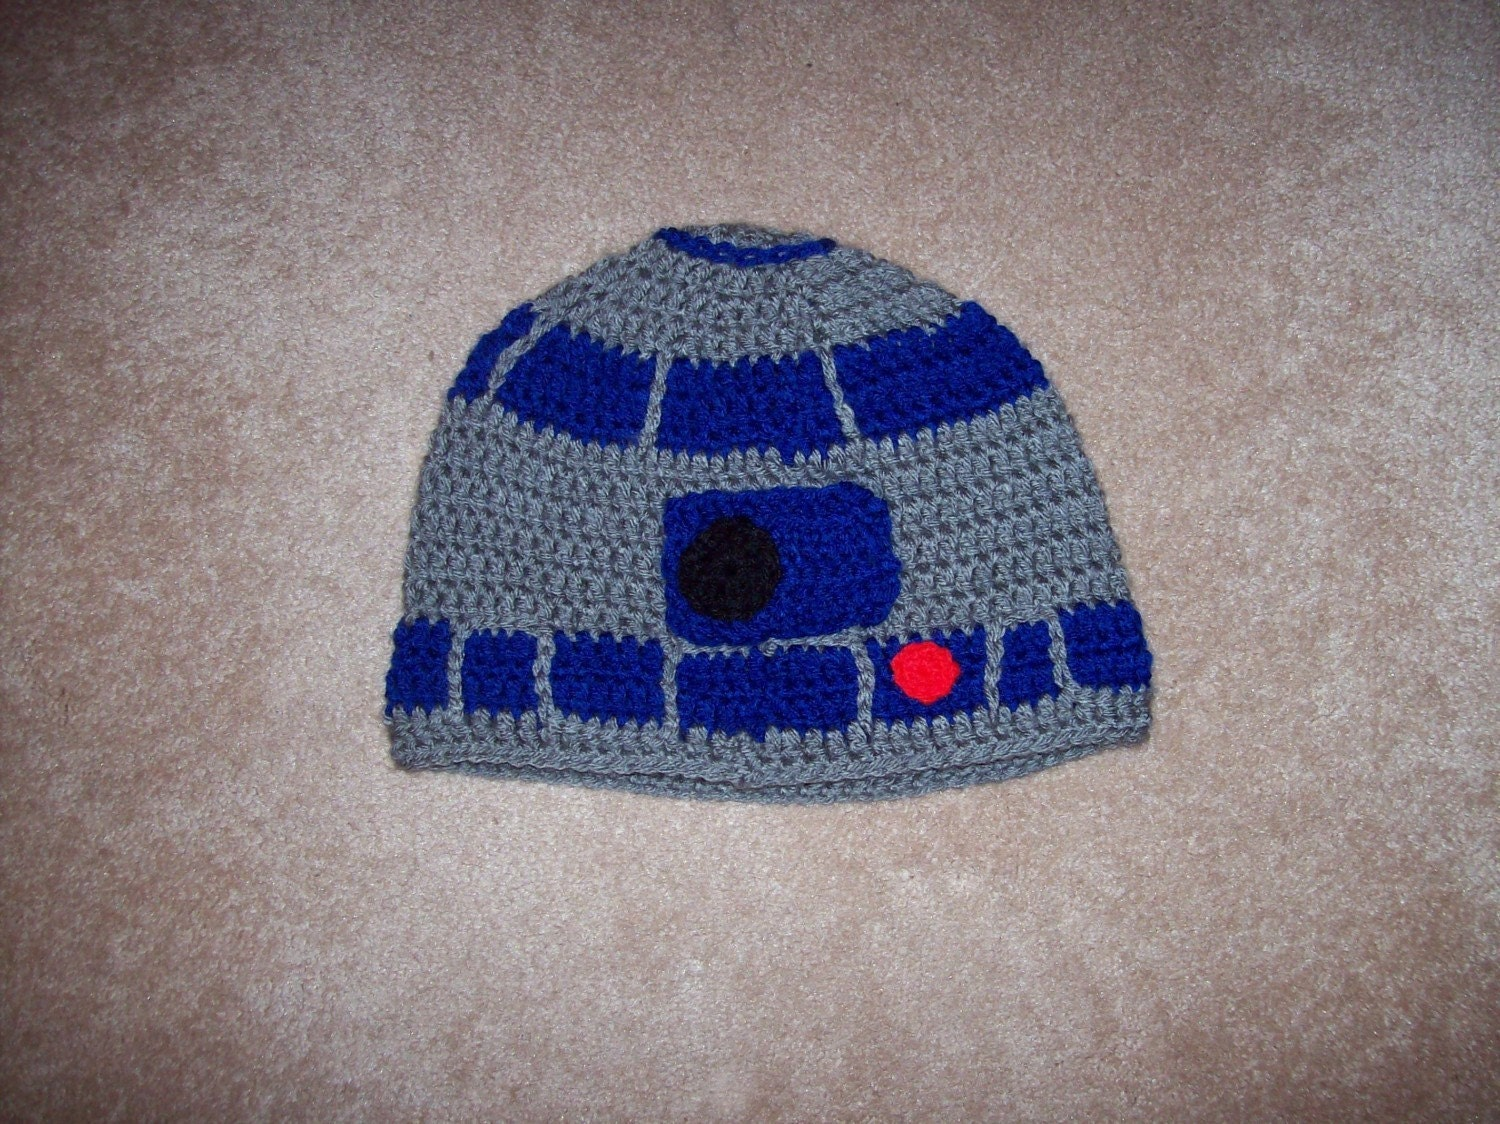 Crochet Robot Droid Hat by craftandcrochet on Etsy